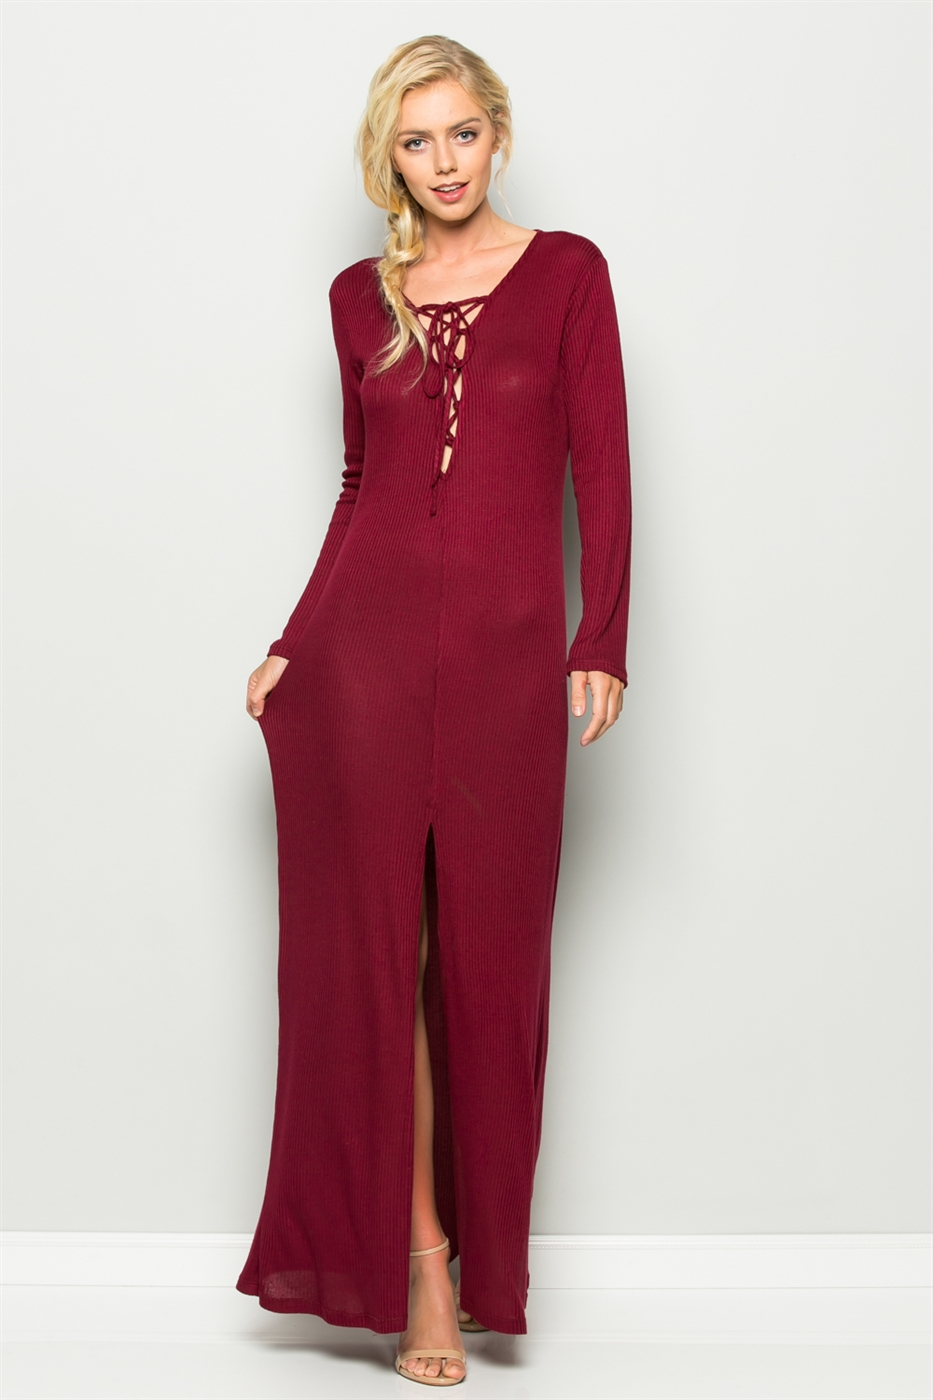 LONG SLEEVE LACE UP MAXI DRESS - orangeshine.com